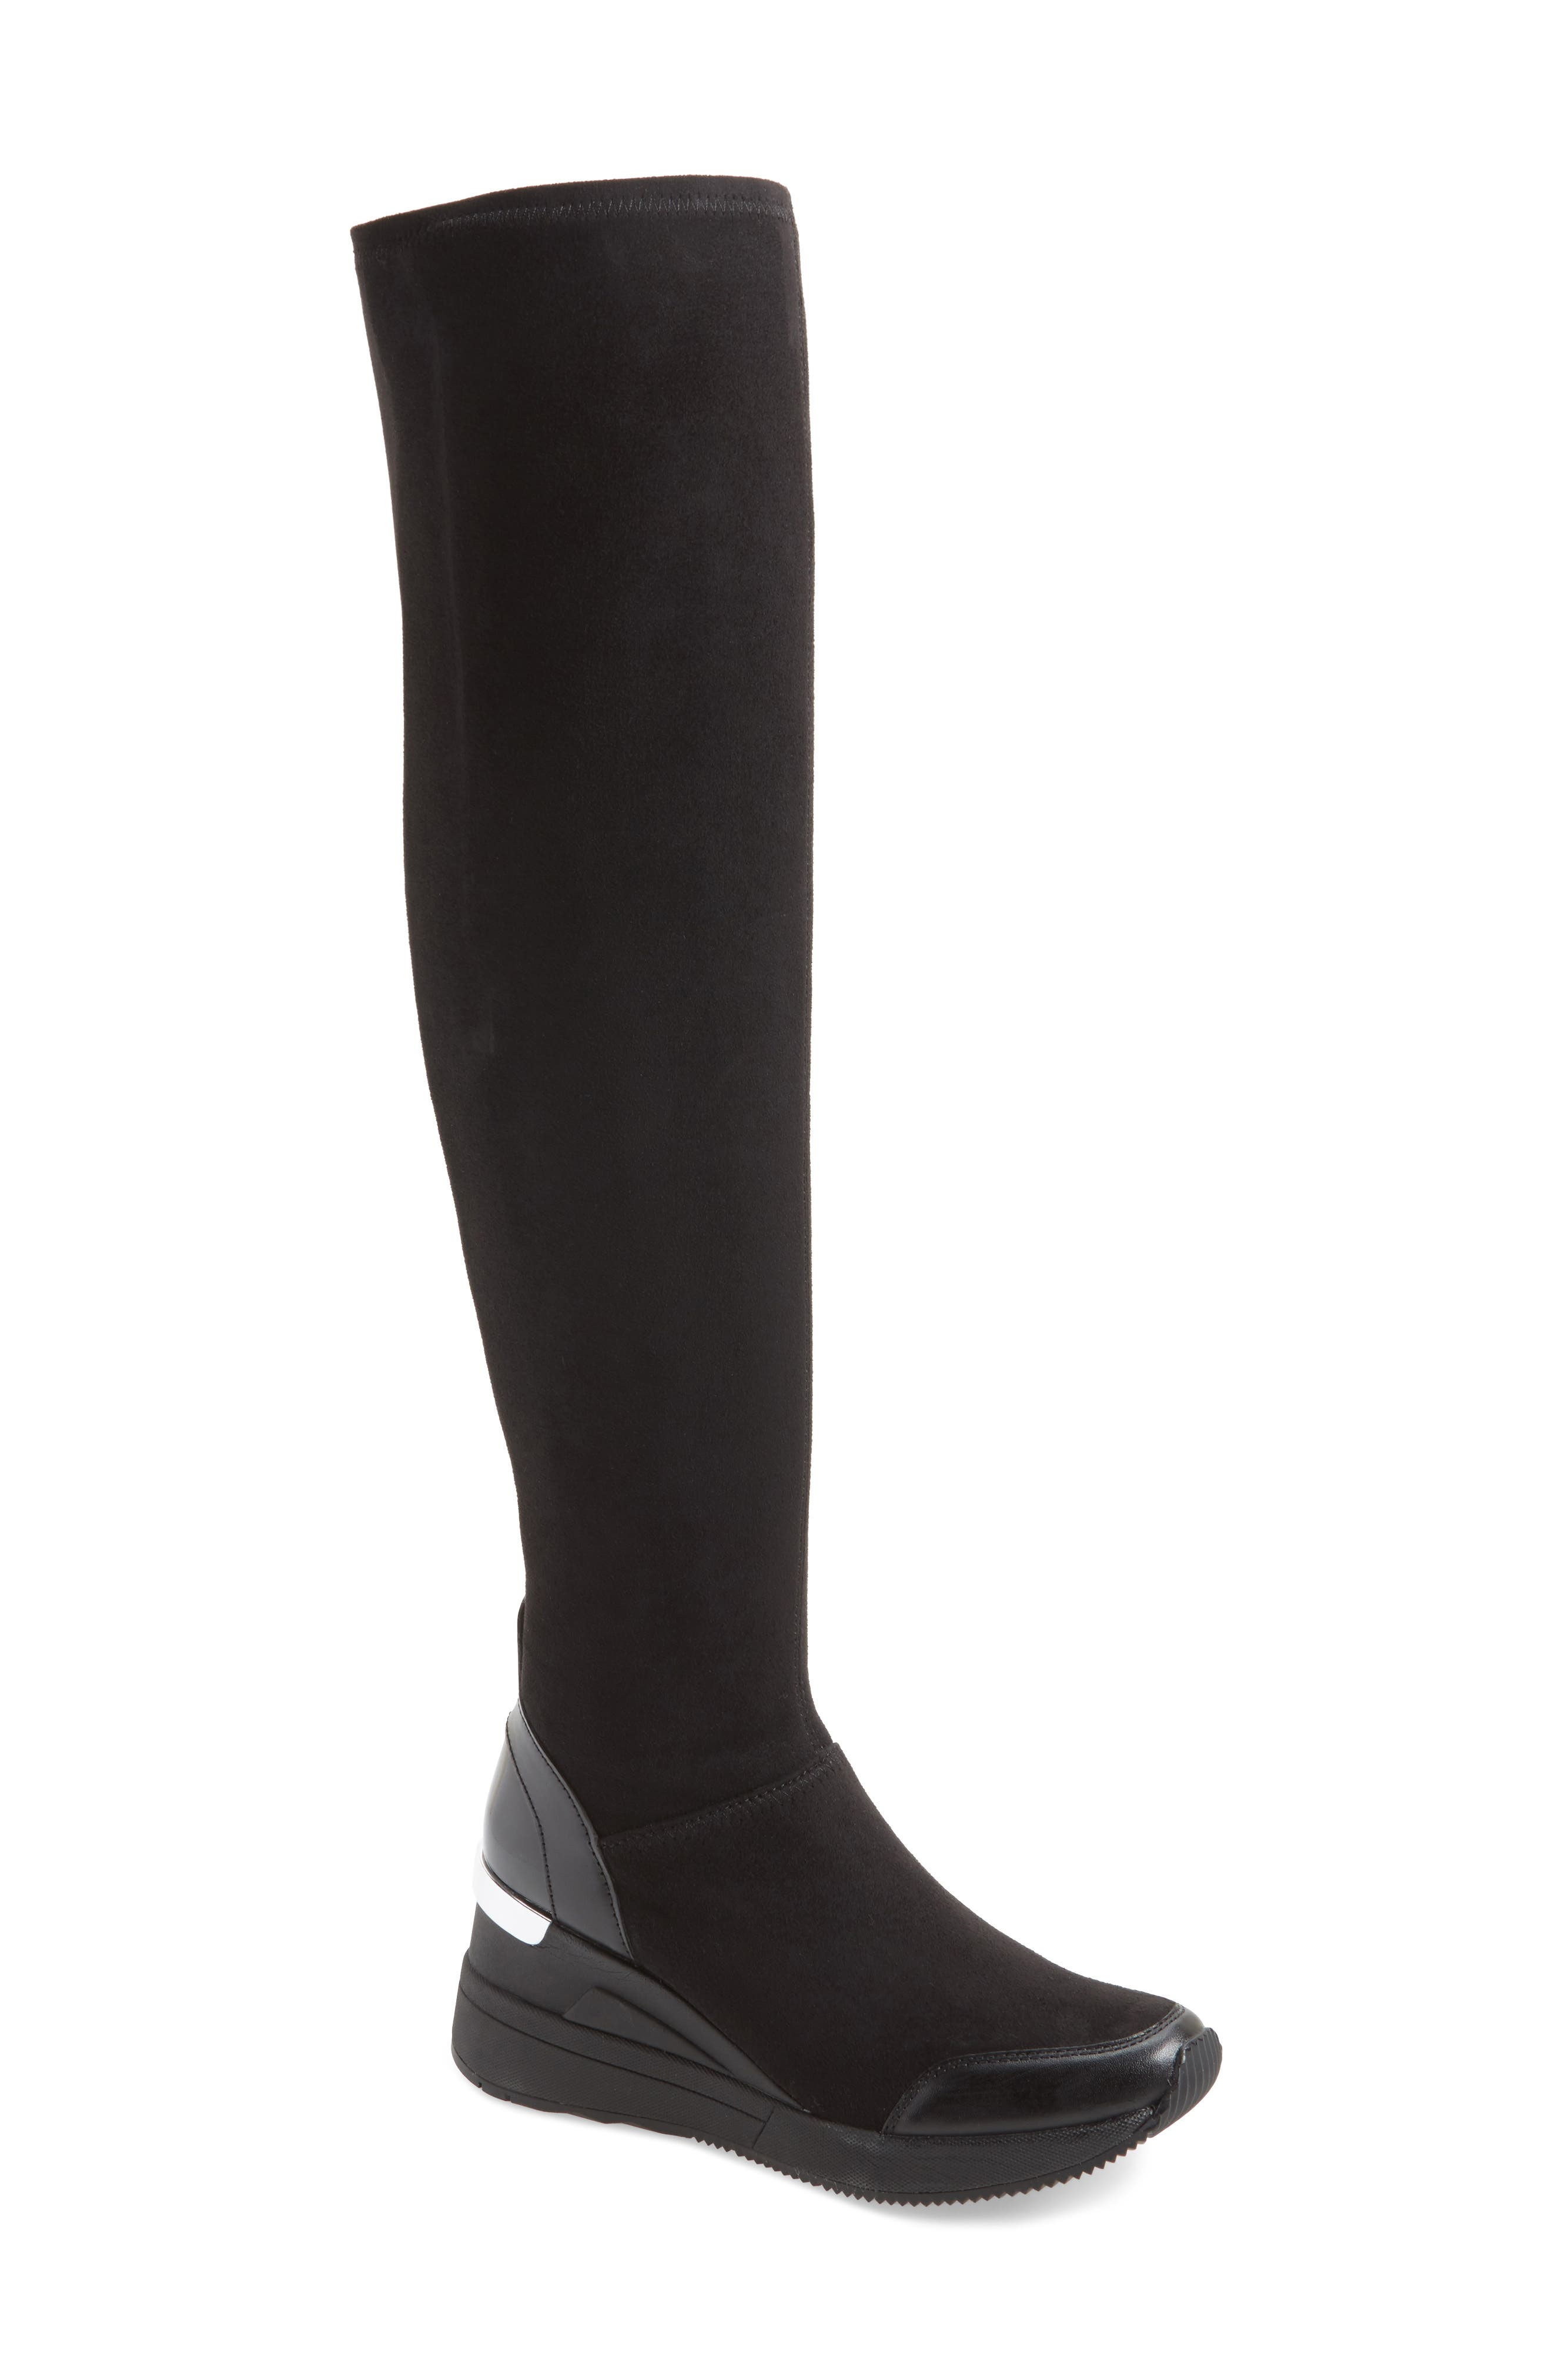 Alternate Image 1 Selected - MICHAEL Michael Kors Ace Over the Knee Boot (Women)